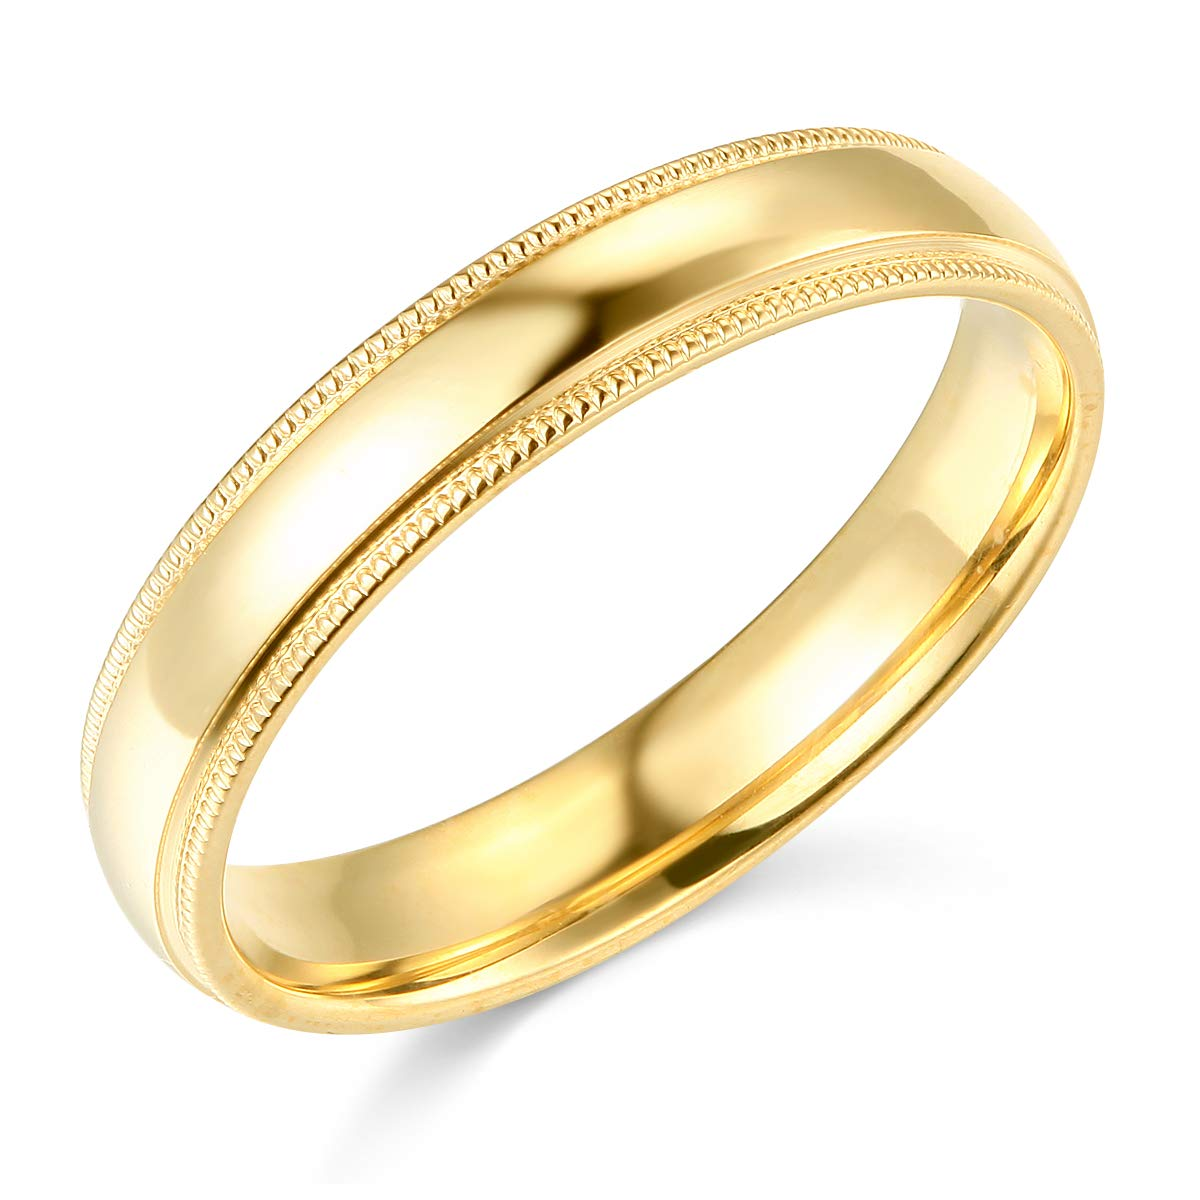 Wellingsale Ladies 14k Yellow Gold Solid 4mm COMFORT FIT Milgrain Traditional Wedding Band Ring - Size 7